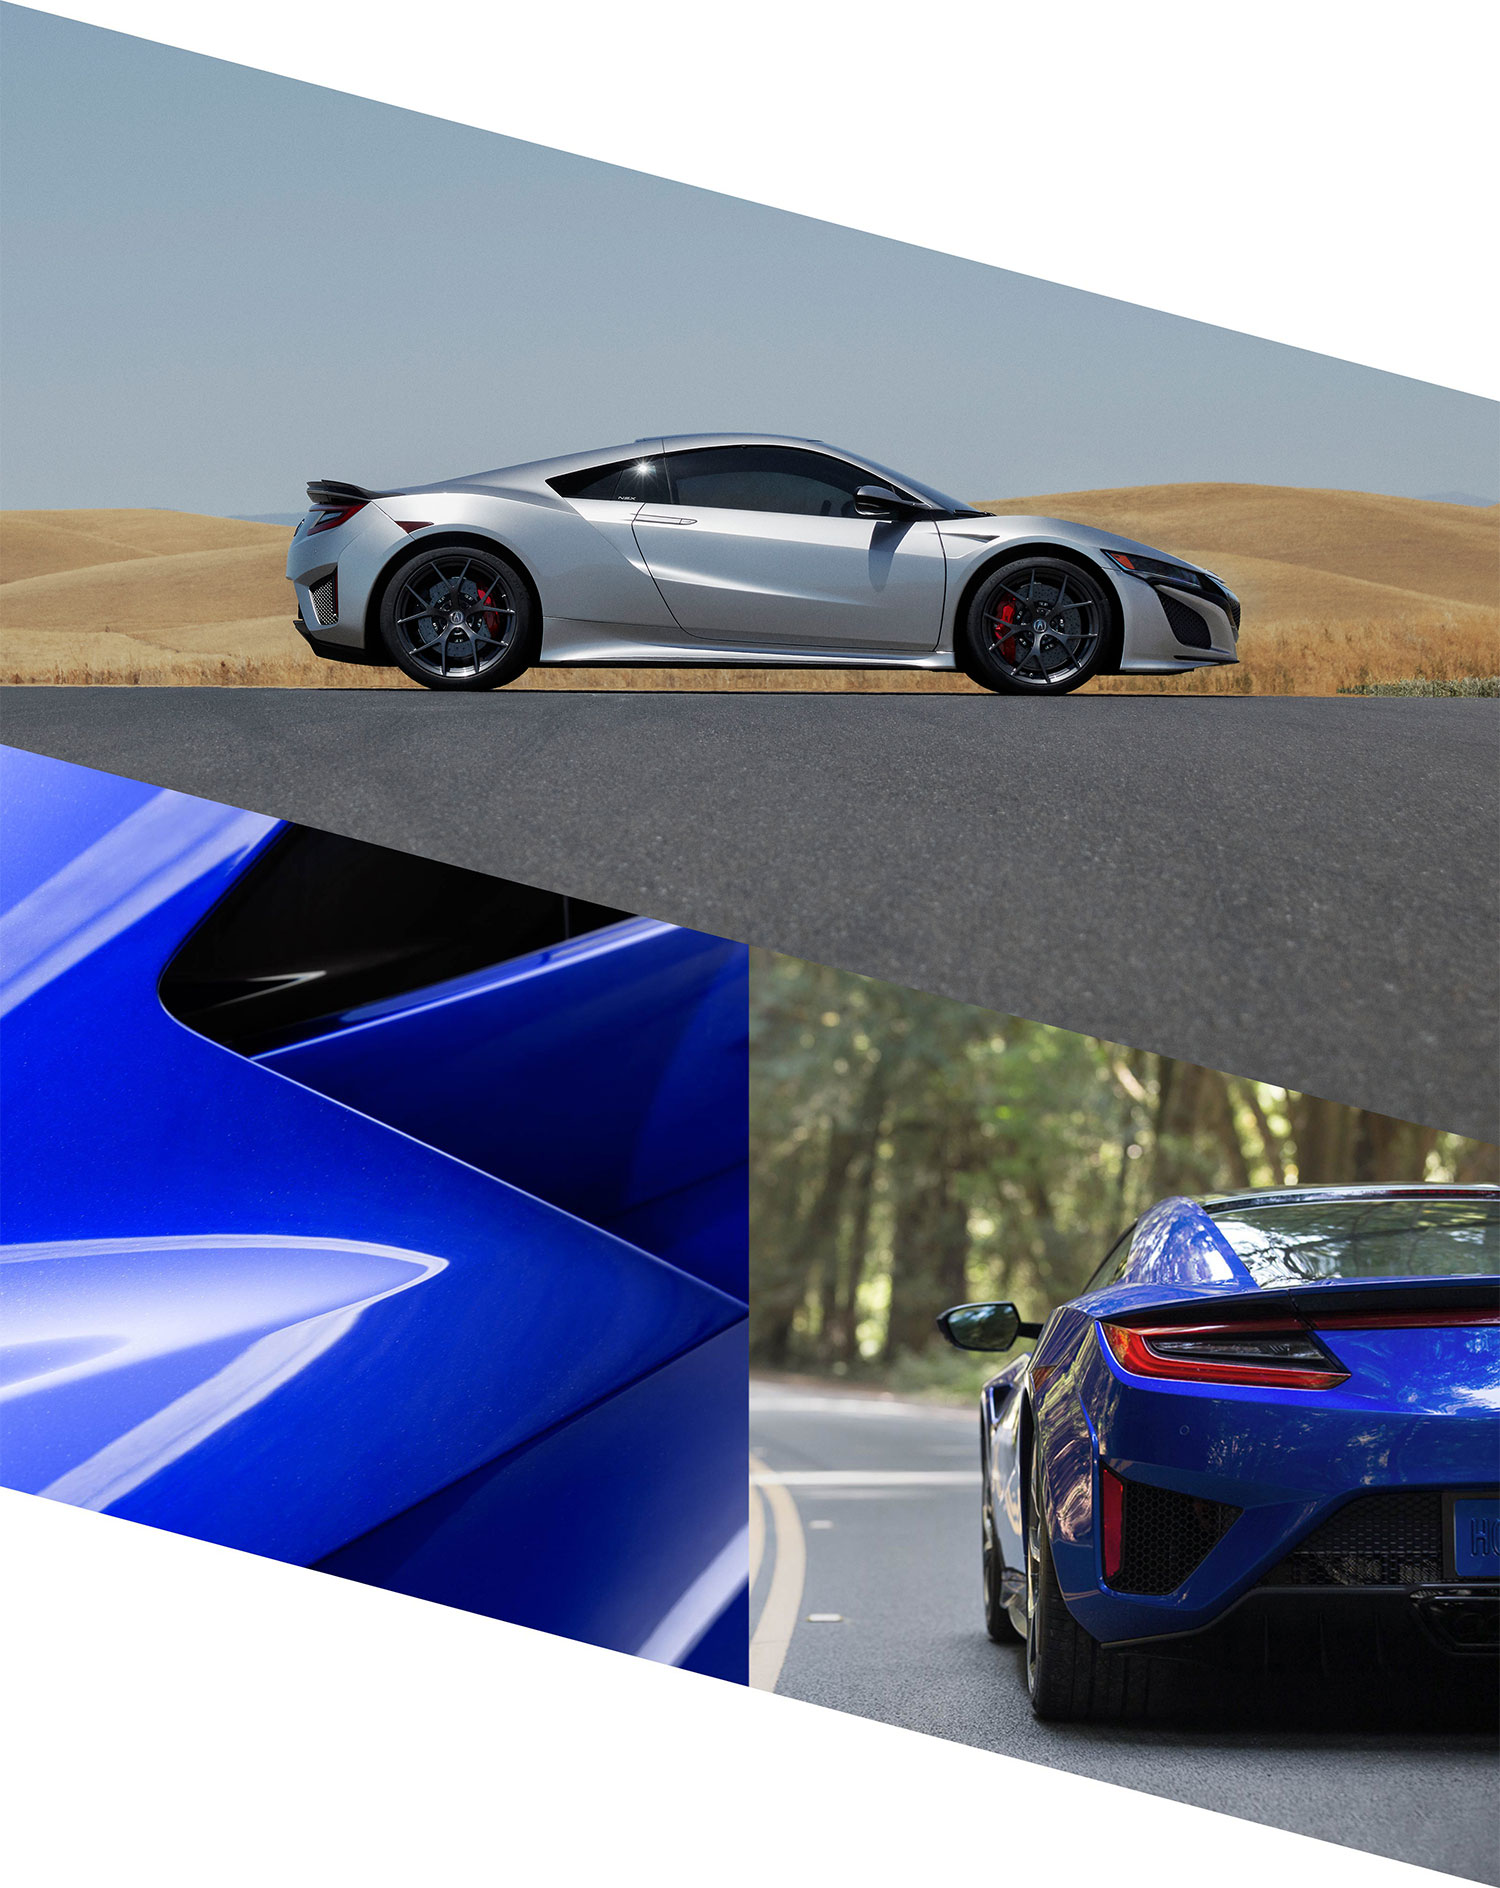 ... NSX presents purity of form in graceful lines weaving through  aggressively sculpted planes. Elegant design language creates intriguing  contrasts from ...